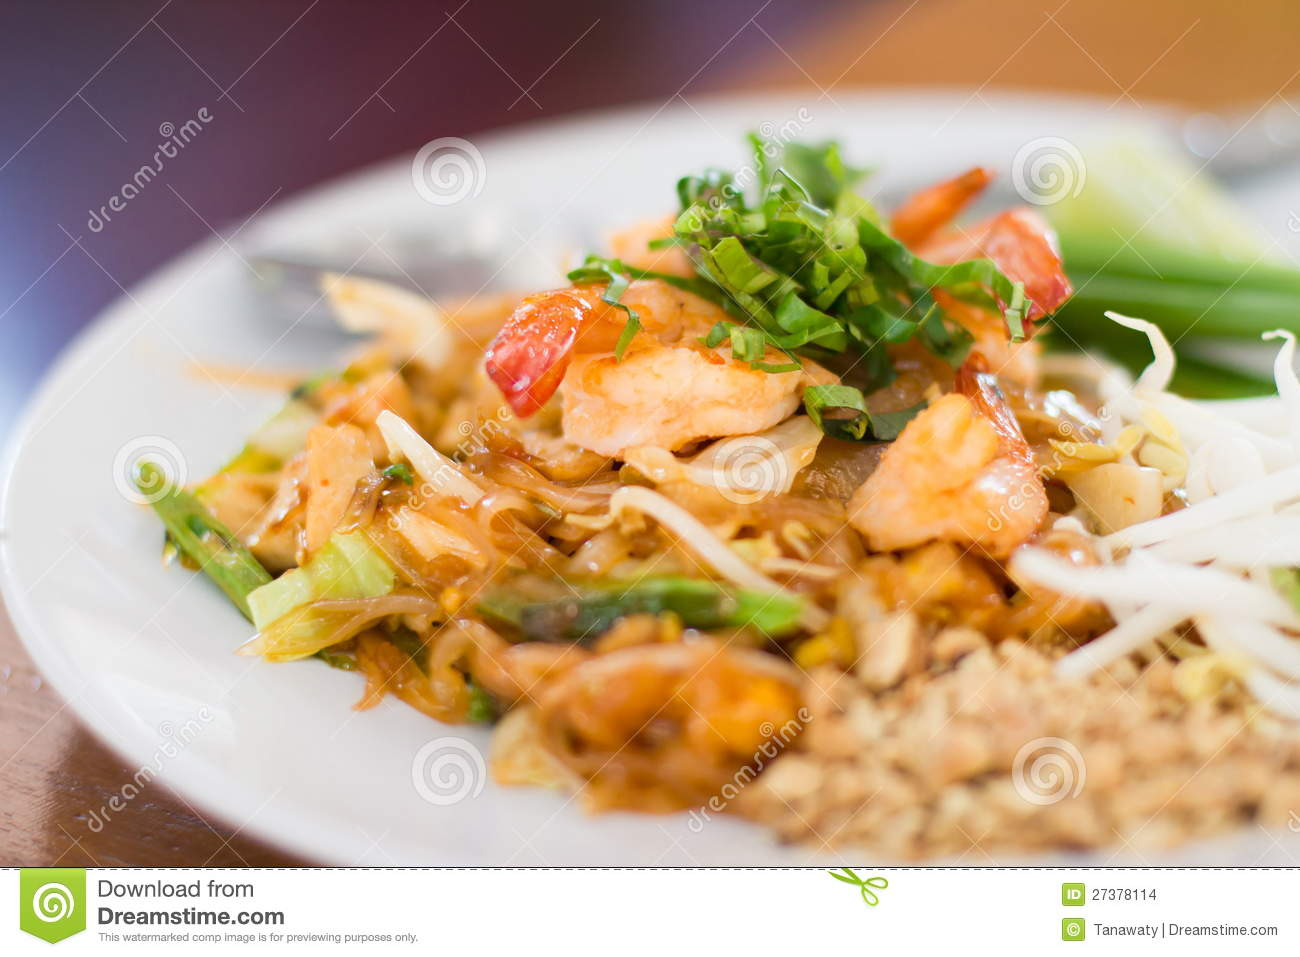 Stir Fry Rice Noodles And Shrimp Stock Images - Image: 27378114